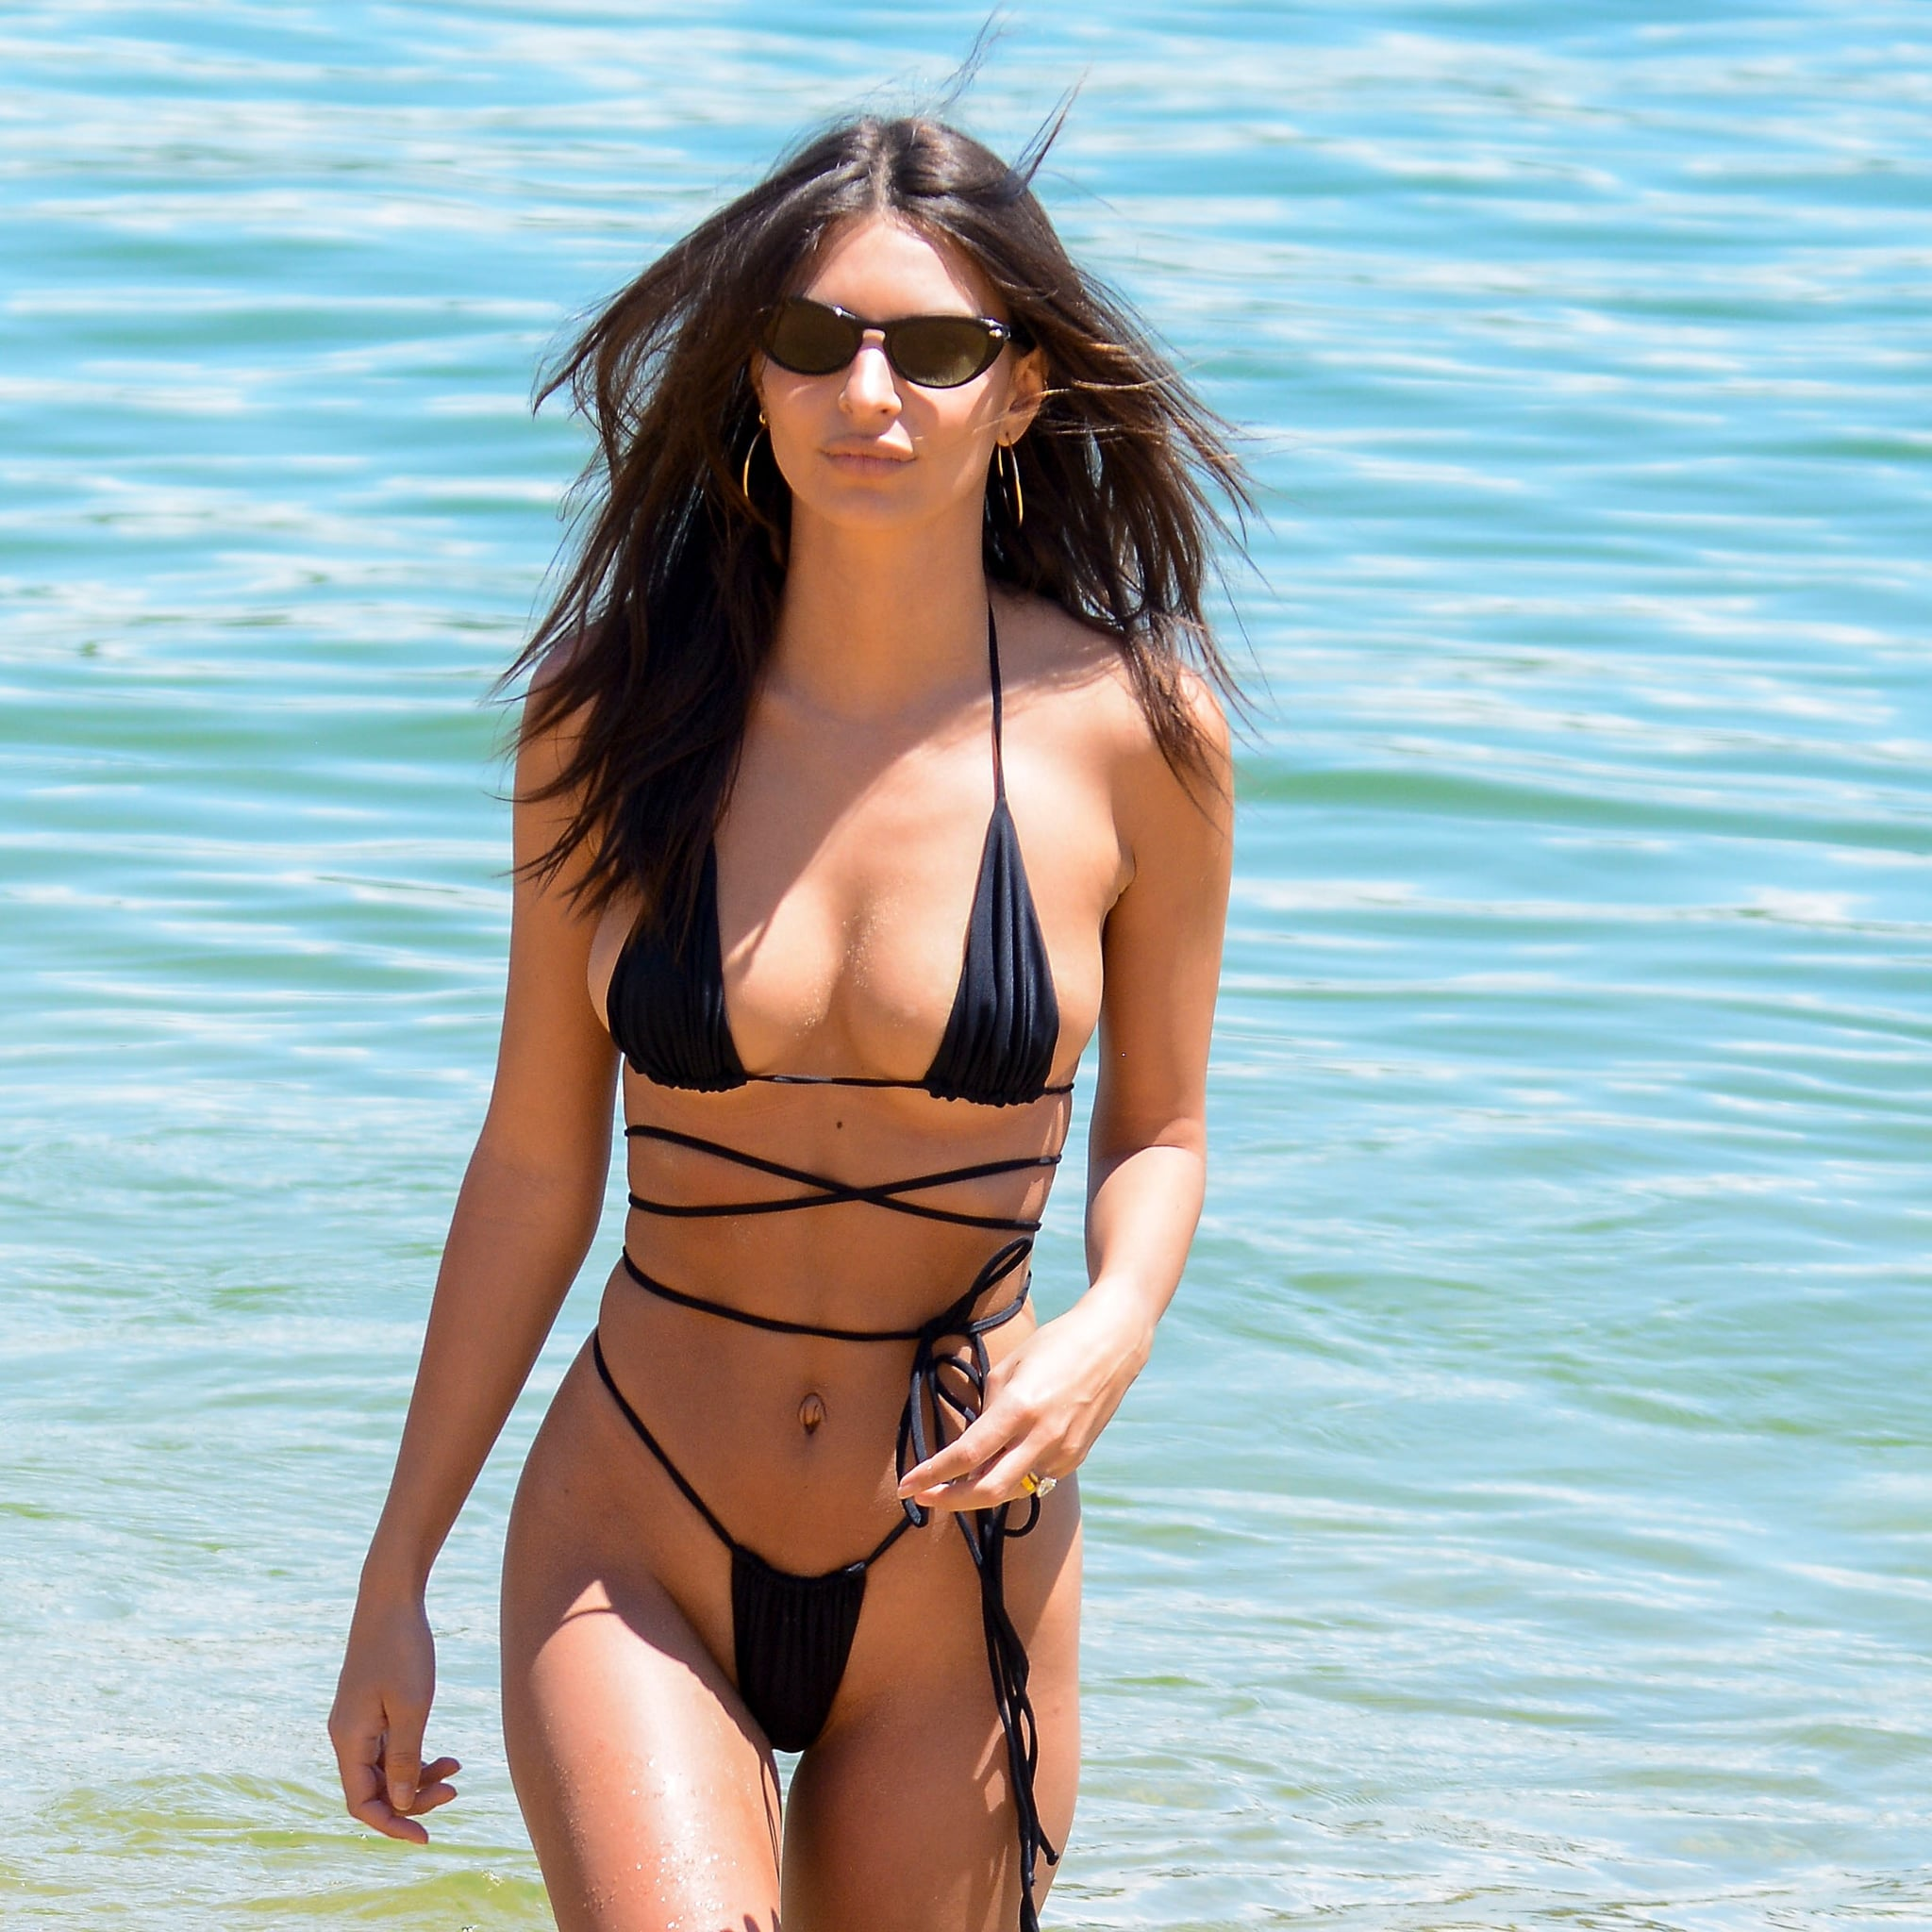 Hot Model Emily Ratajkowski Super Bikini Pictures - Emily Ratajkowski Net Worth, Pics, Wallpapers, Career and Biography